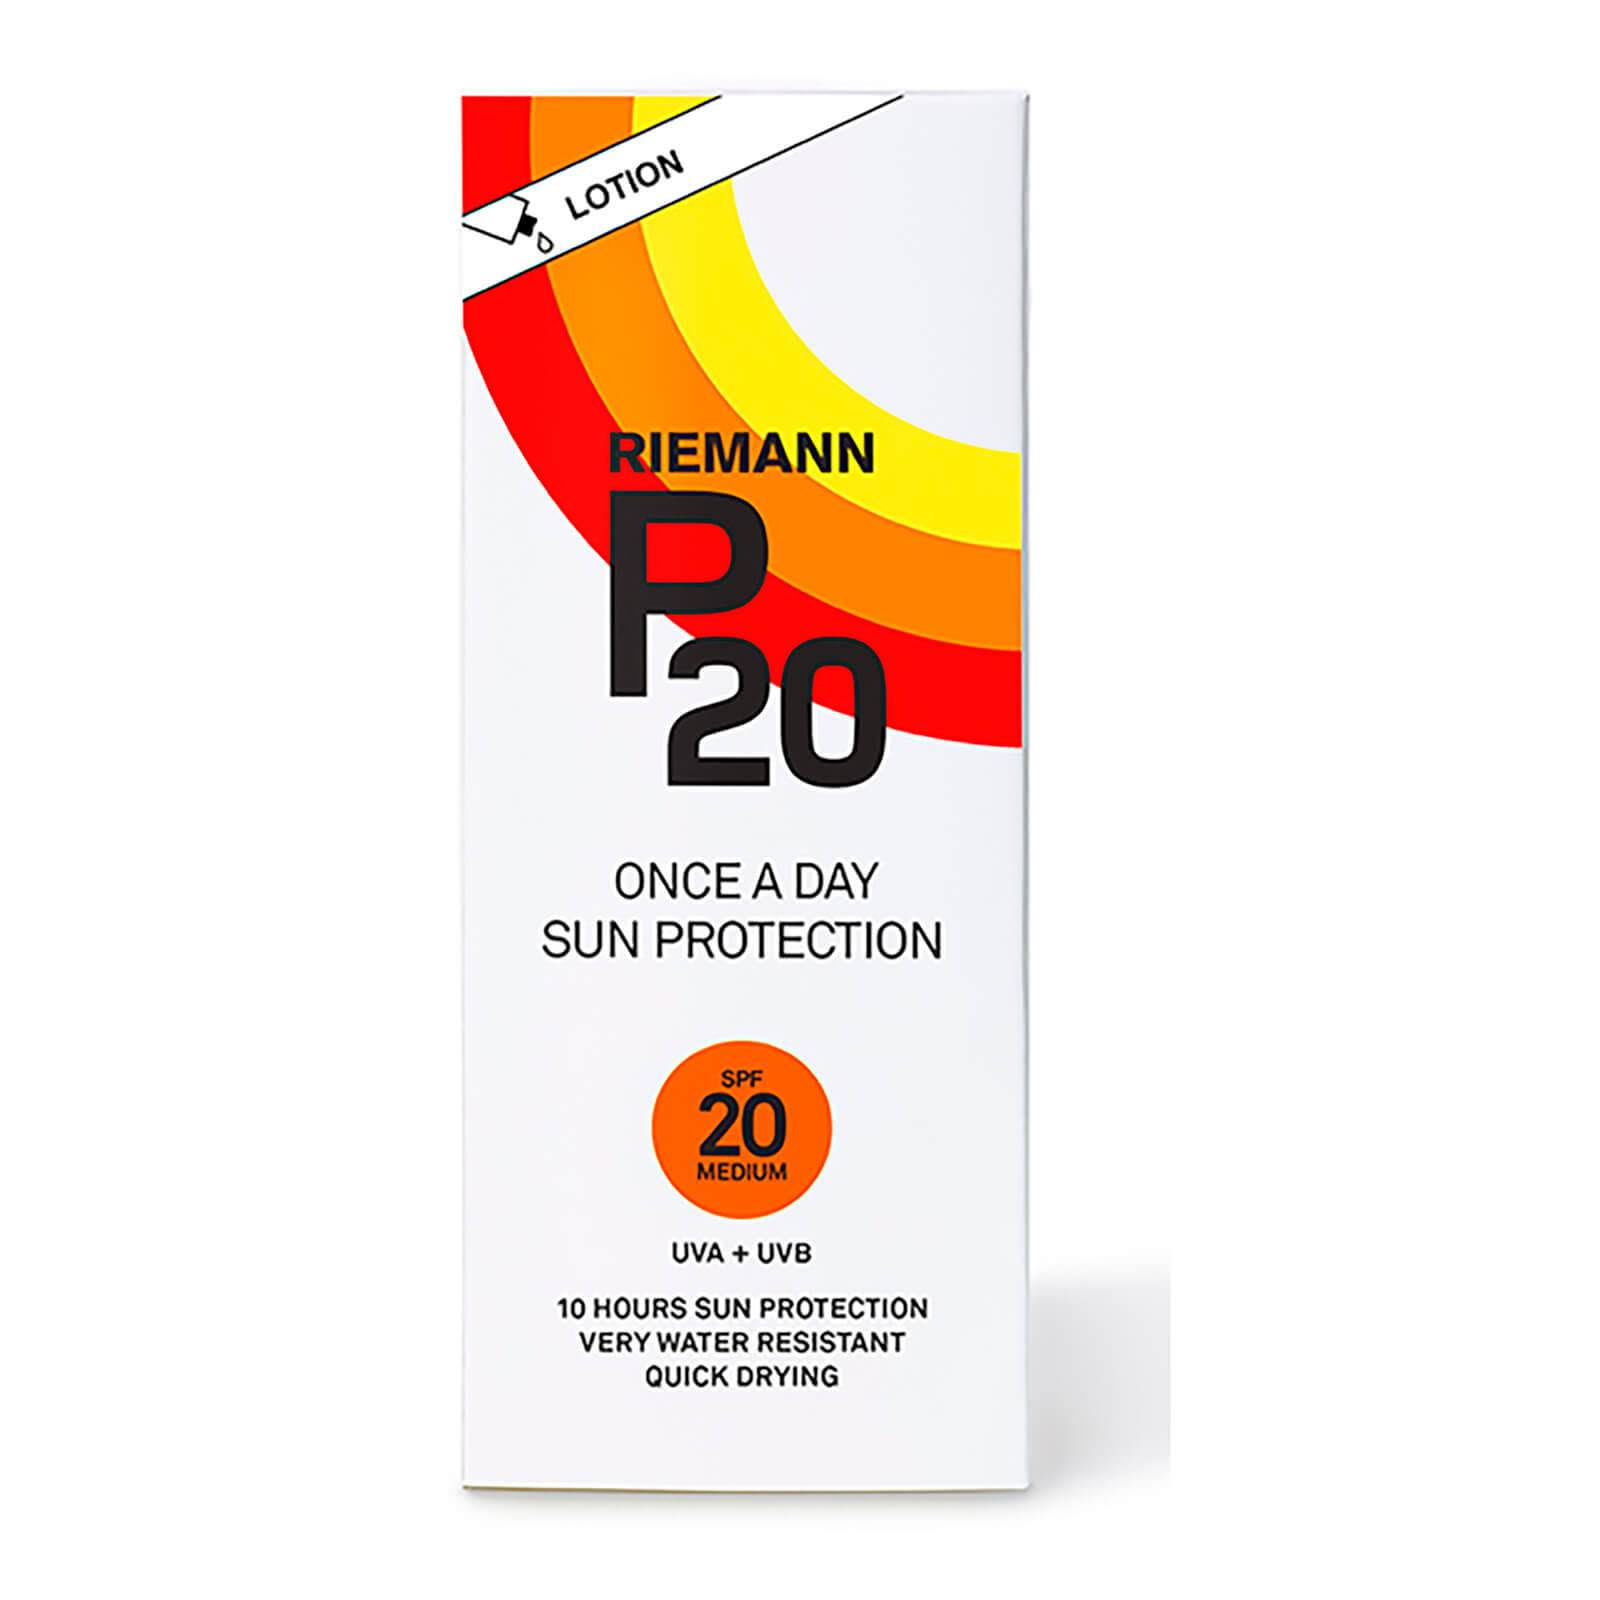 Riemann P20 Once A Day Sun Protection Lotion - 200ml, Spf 20